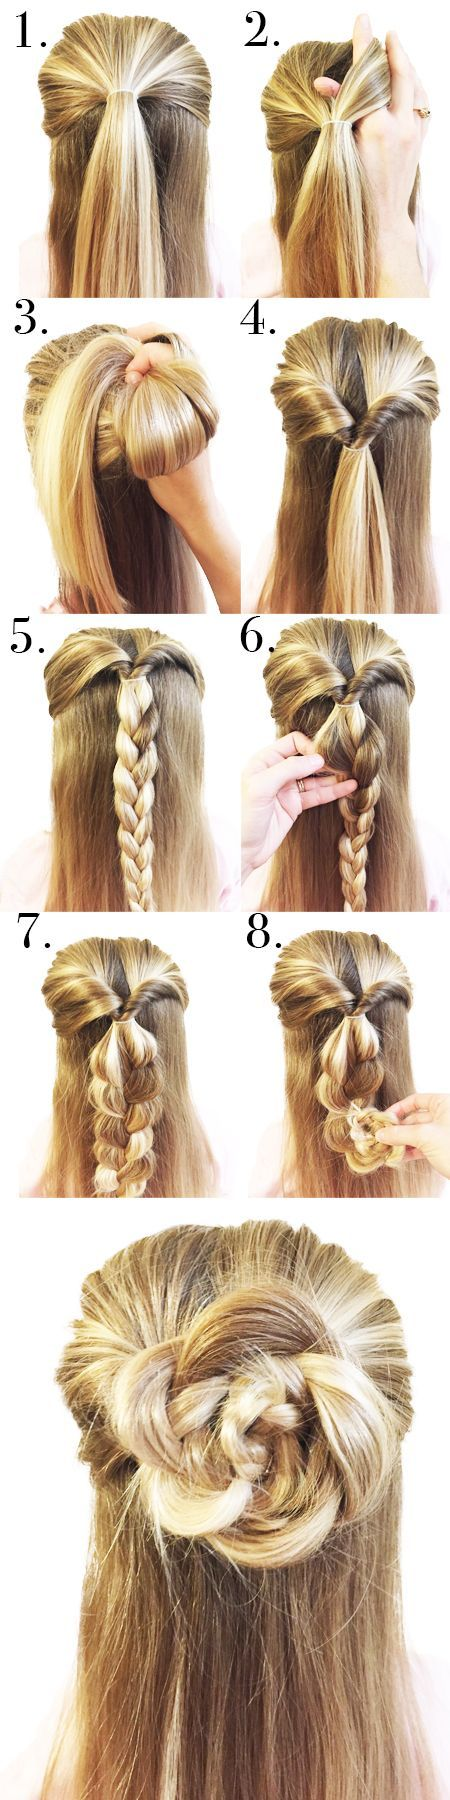 2017 06 homecoming hairstyles long hair - The Braided Rose Hair How To More